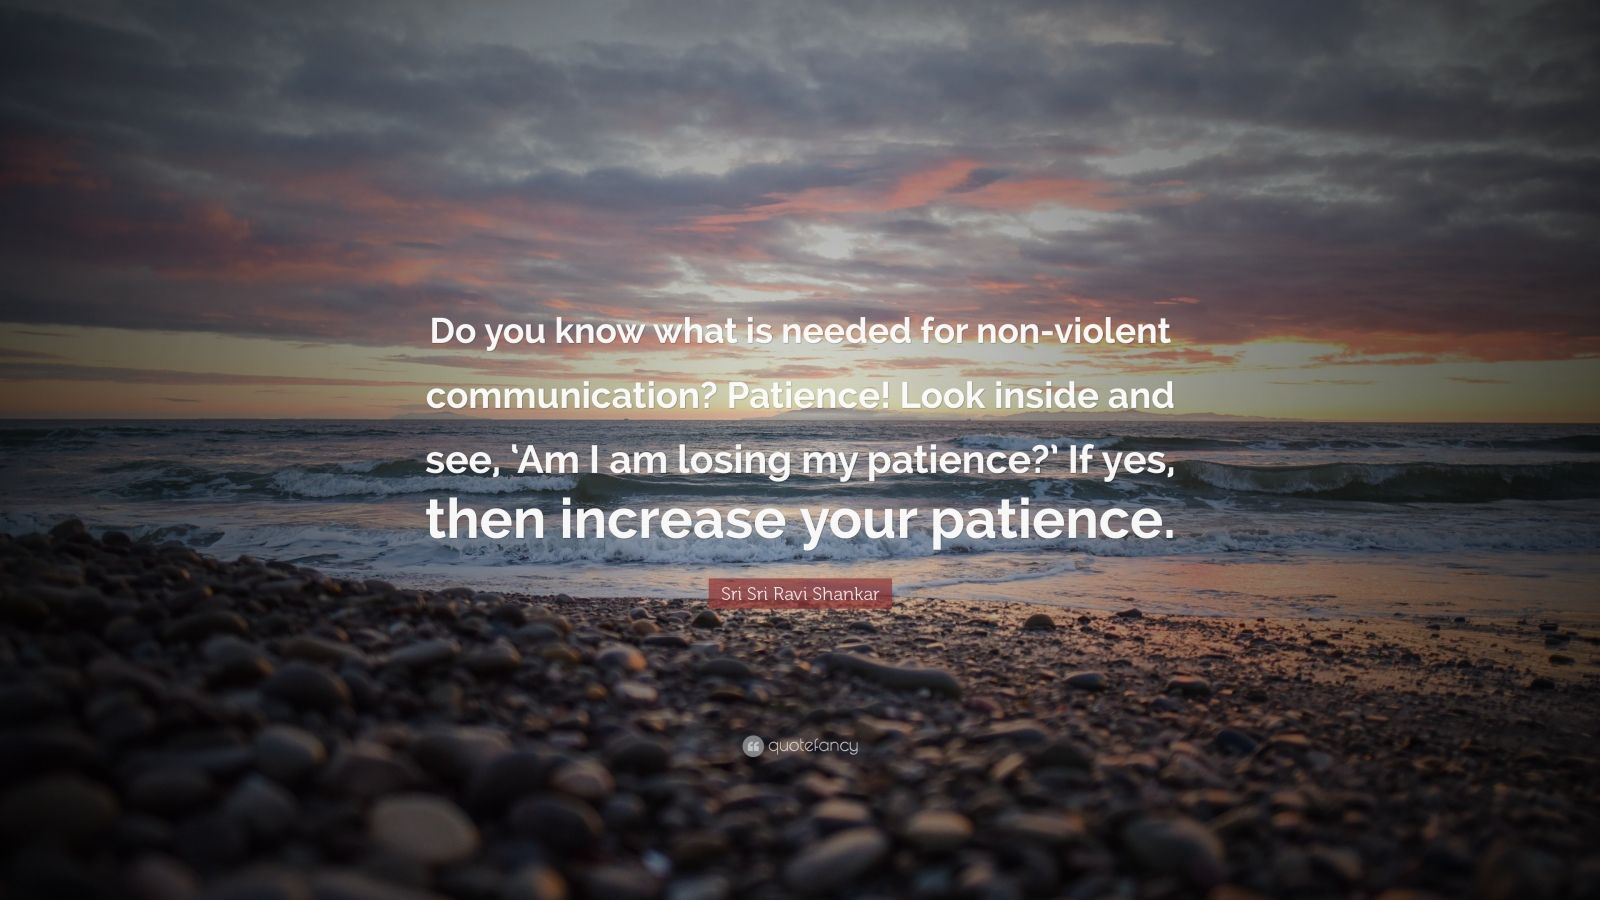 "Sri Sri Ravi Shankar Quote: ""Do you know what is needed for non-violent communication? Patience! Look inside and see, 'Am I am losing my patience?' If yes, then increase your patience."""